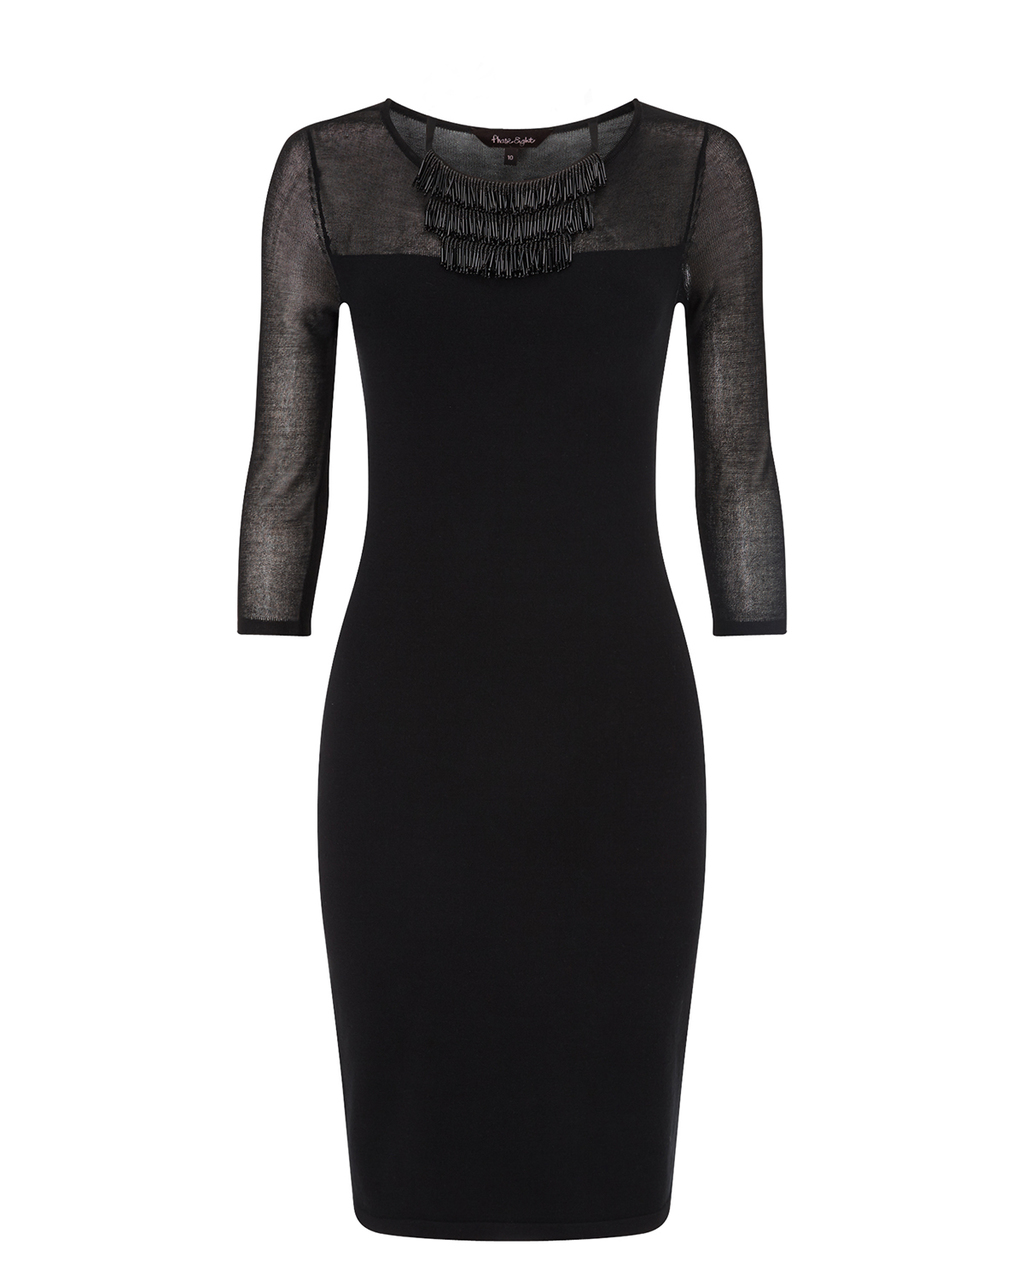 Darlene Necklace Dress - neckline: round neck; fit: tight; pattern: plain; style: bodycon; bust detail: sheer at bust; predominant colour: black; occasions: evening; length: on the knee; fibres: viscose/rayon - stretch; sleeve length: 3/4 length; sleeve style: standard; texture group: jersey - clingy; pattern type: fabric; season: a/w 2015